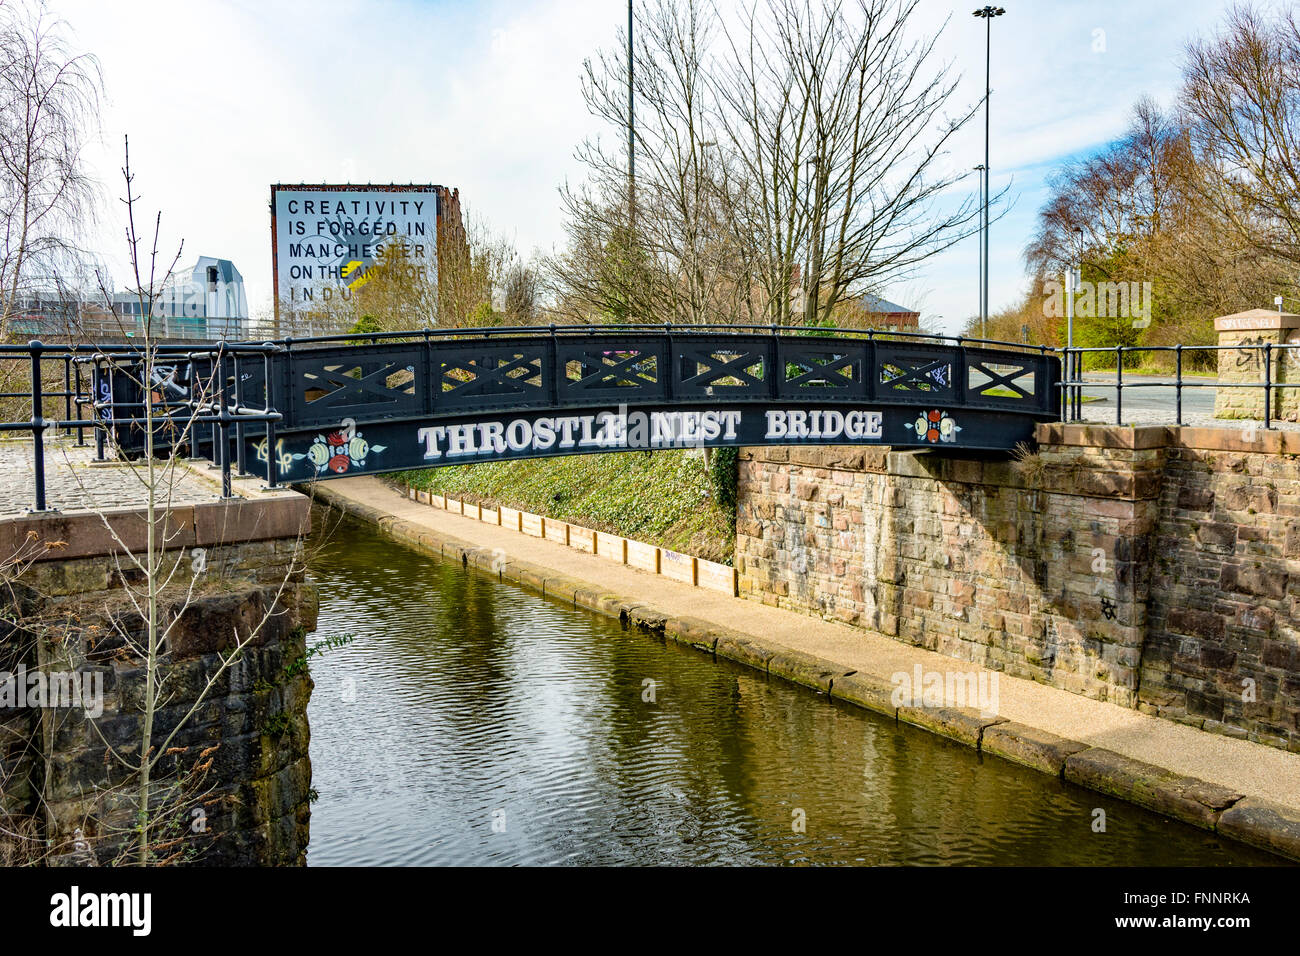 The Throstle Nest footbridge over the Bridgewater Canal, Old Trafford, Manchester, England, UK - Stock Image